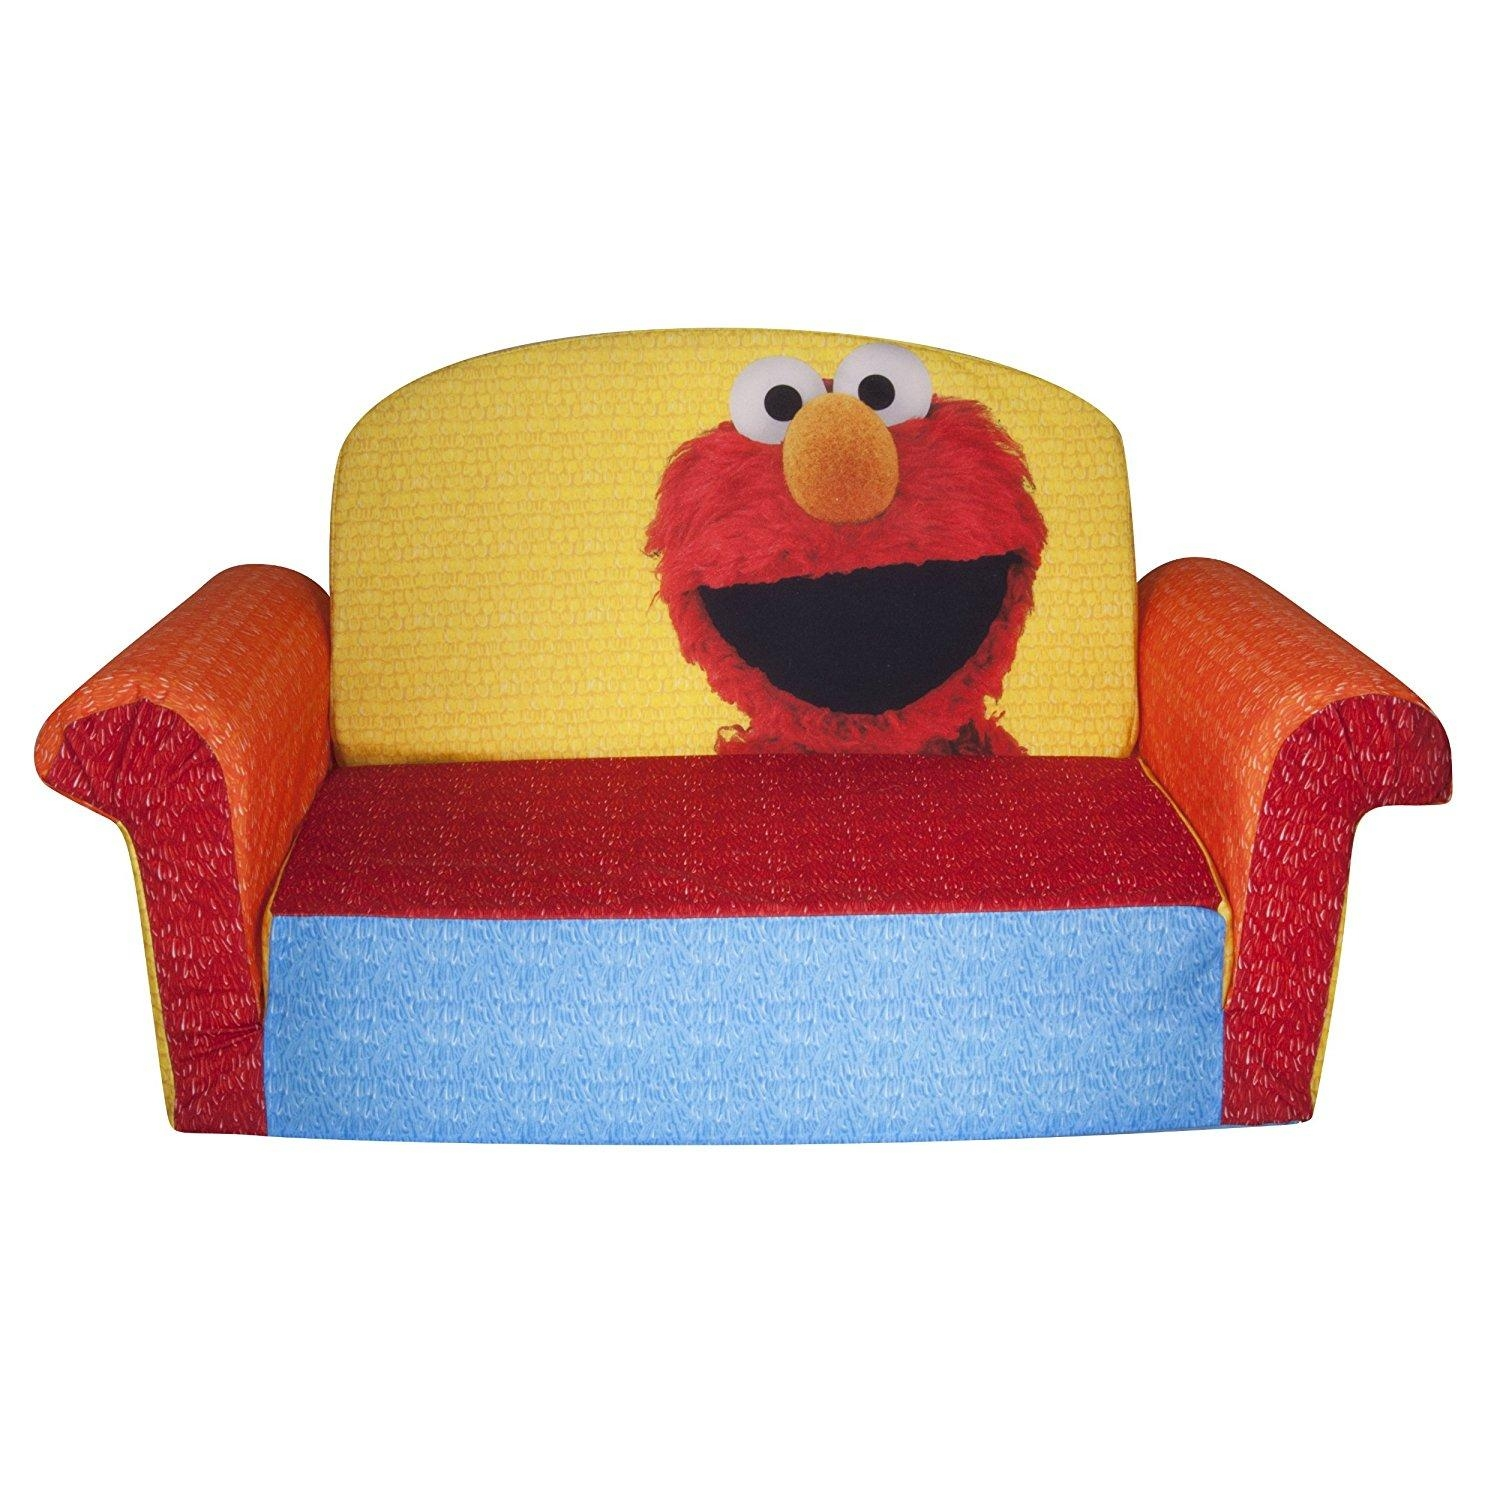 Sofas Center : Online Get Cheap Kids Sofa Chair Aliexpress Com Intended For Cheap Kids Sofas (Image 15 of 20)